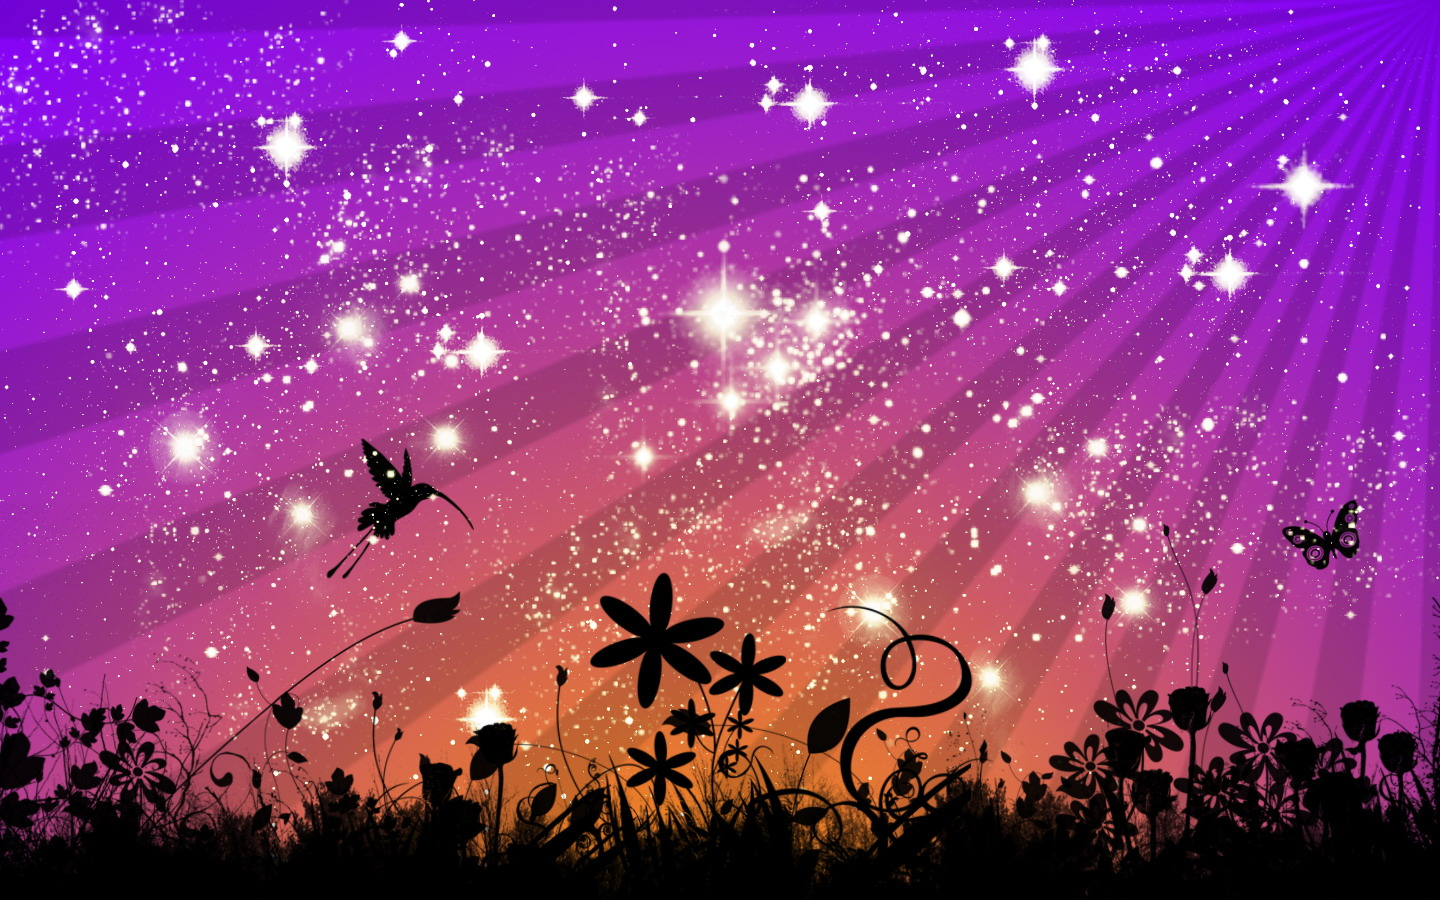 Why are the stars shining